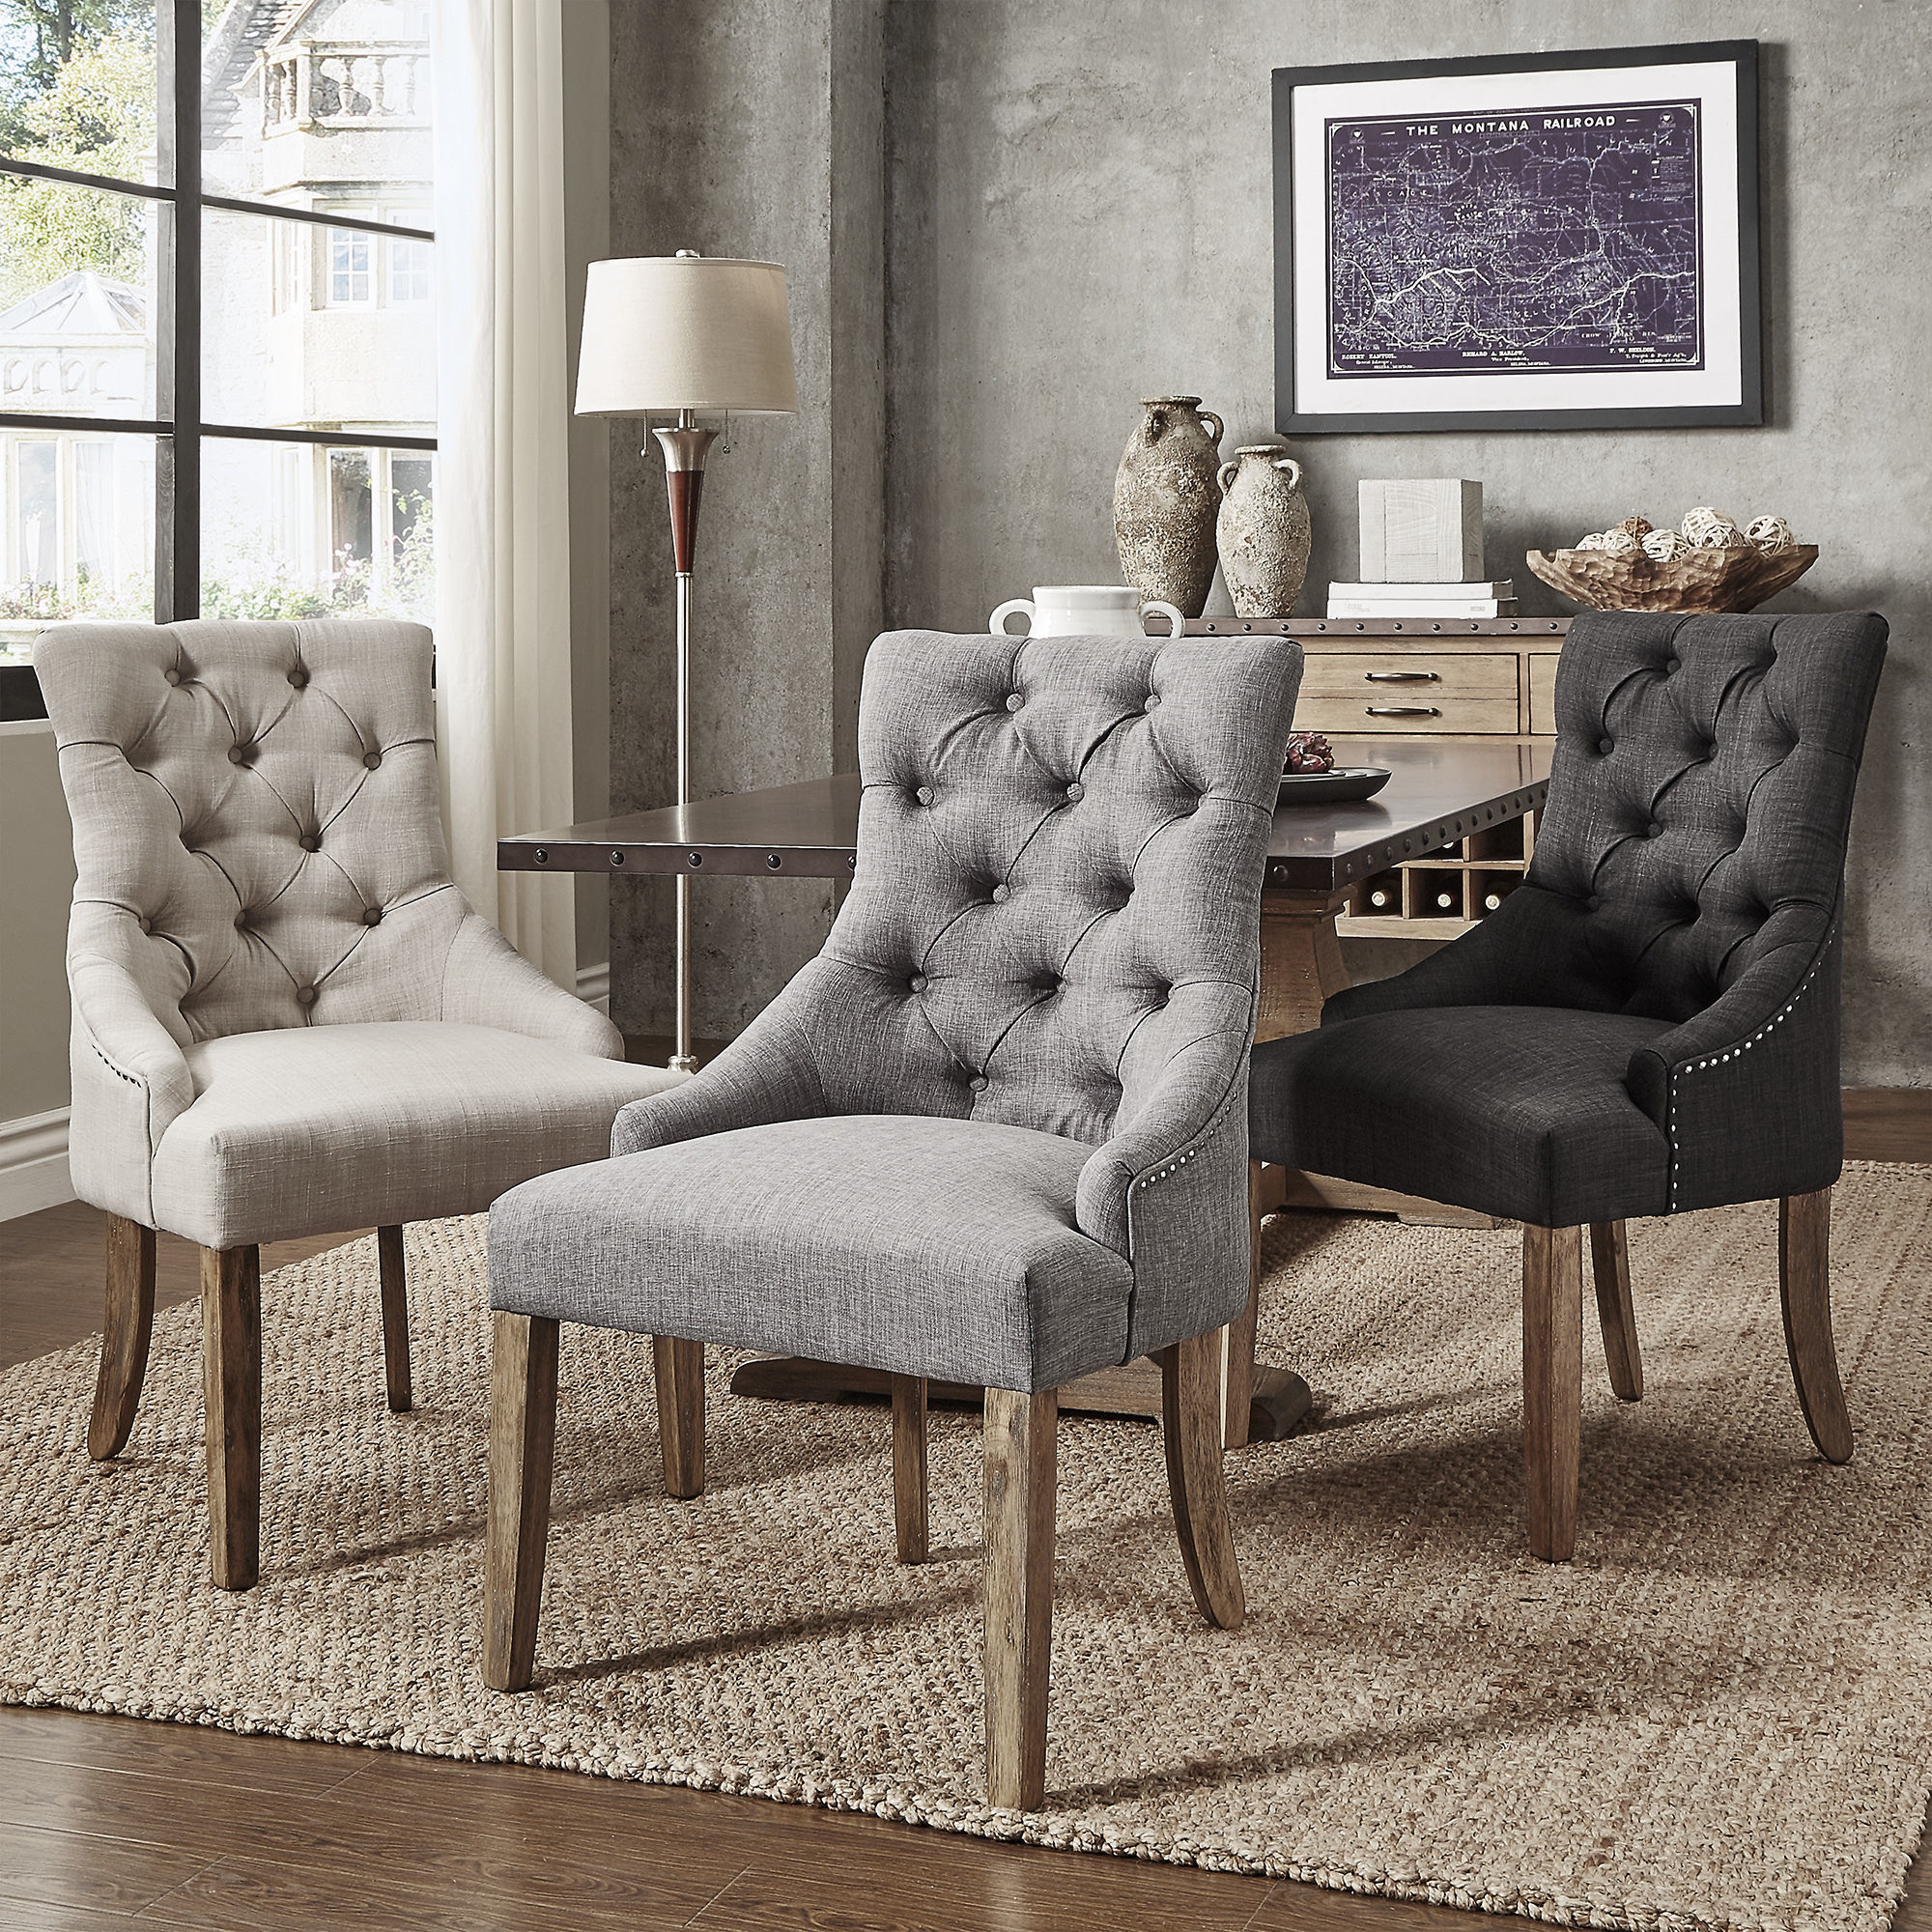 buy accent chairs living room chairs online at overstock our best rh overstock com gray living room accent chairs